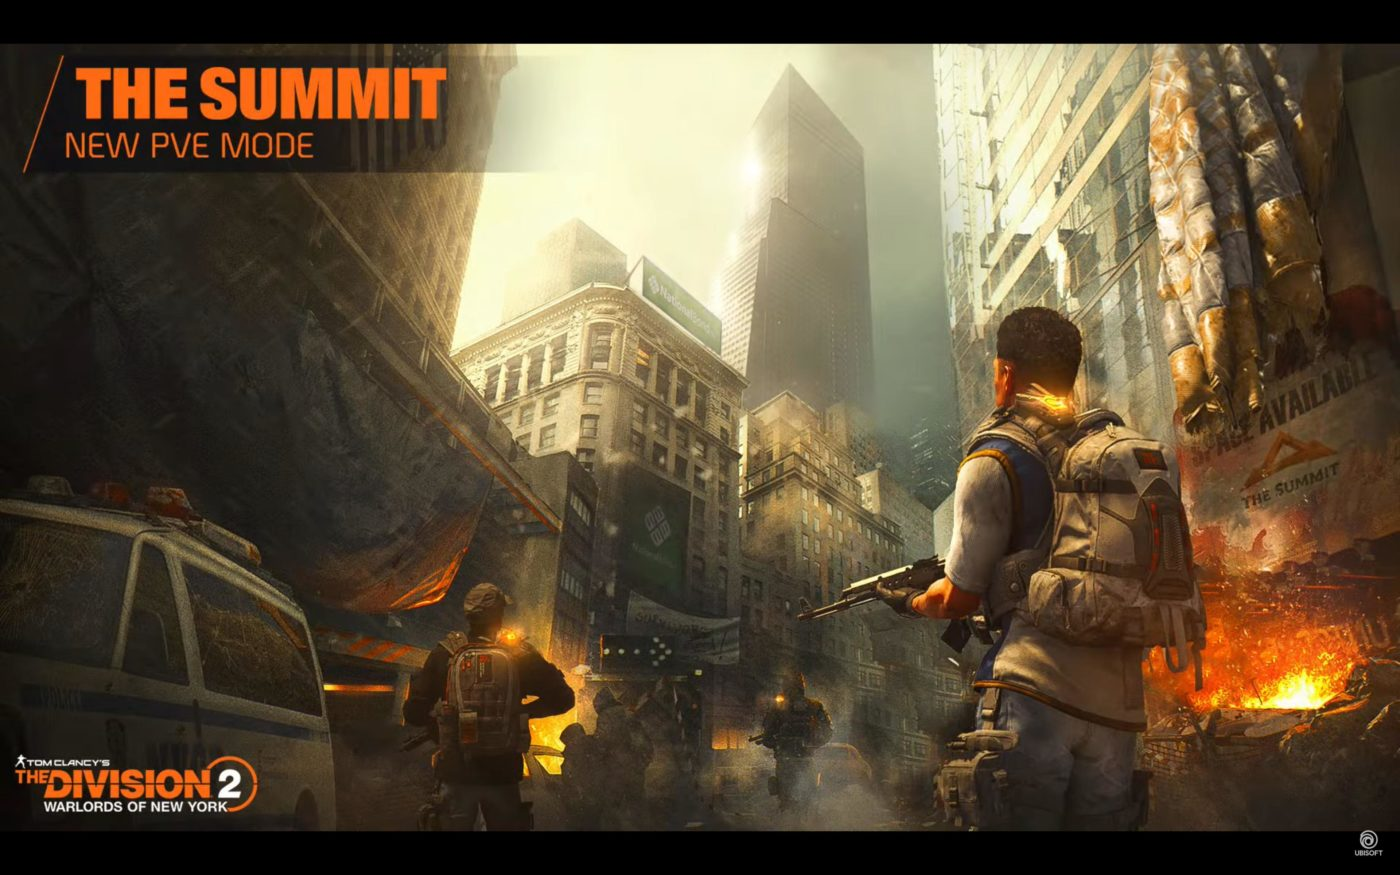 The Division 2 New PvE Mode